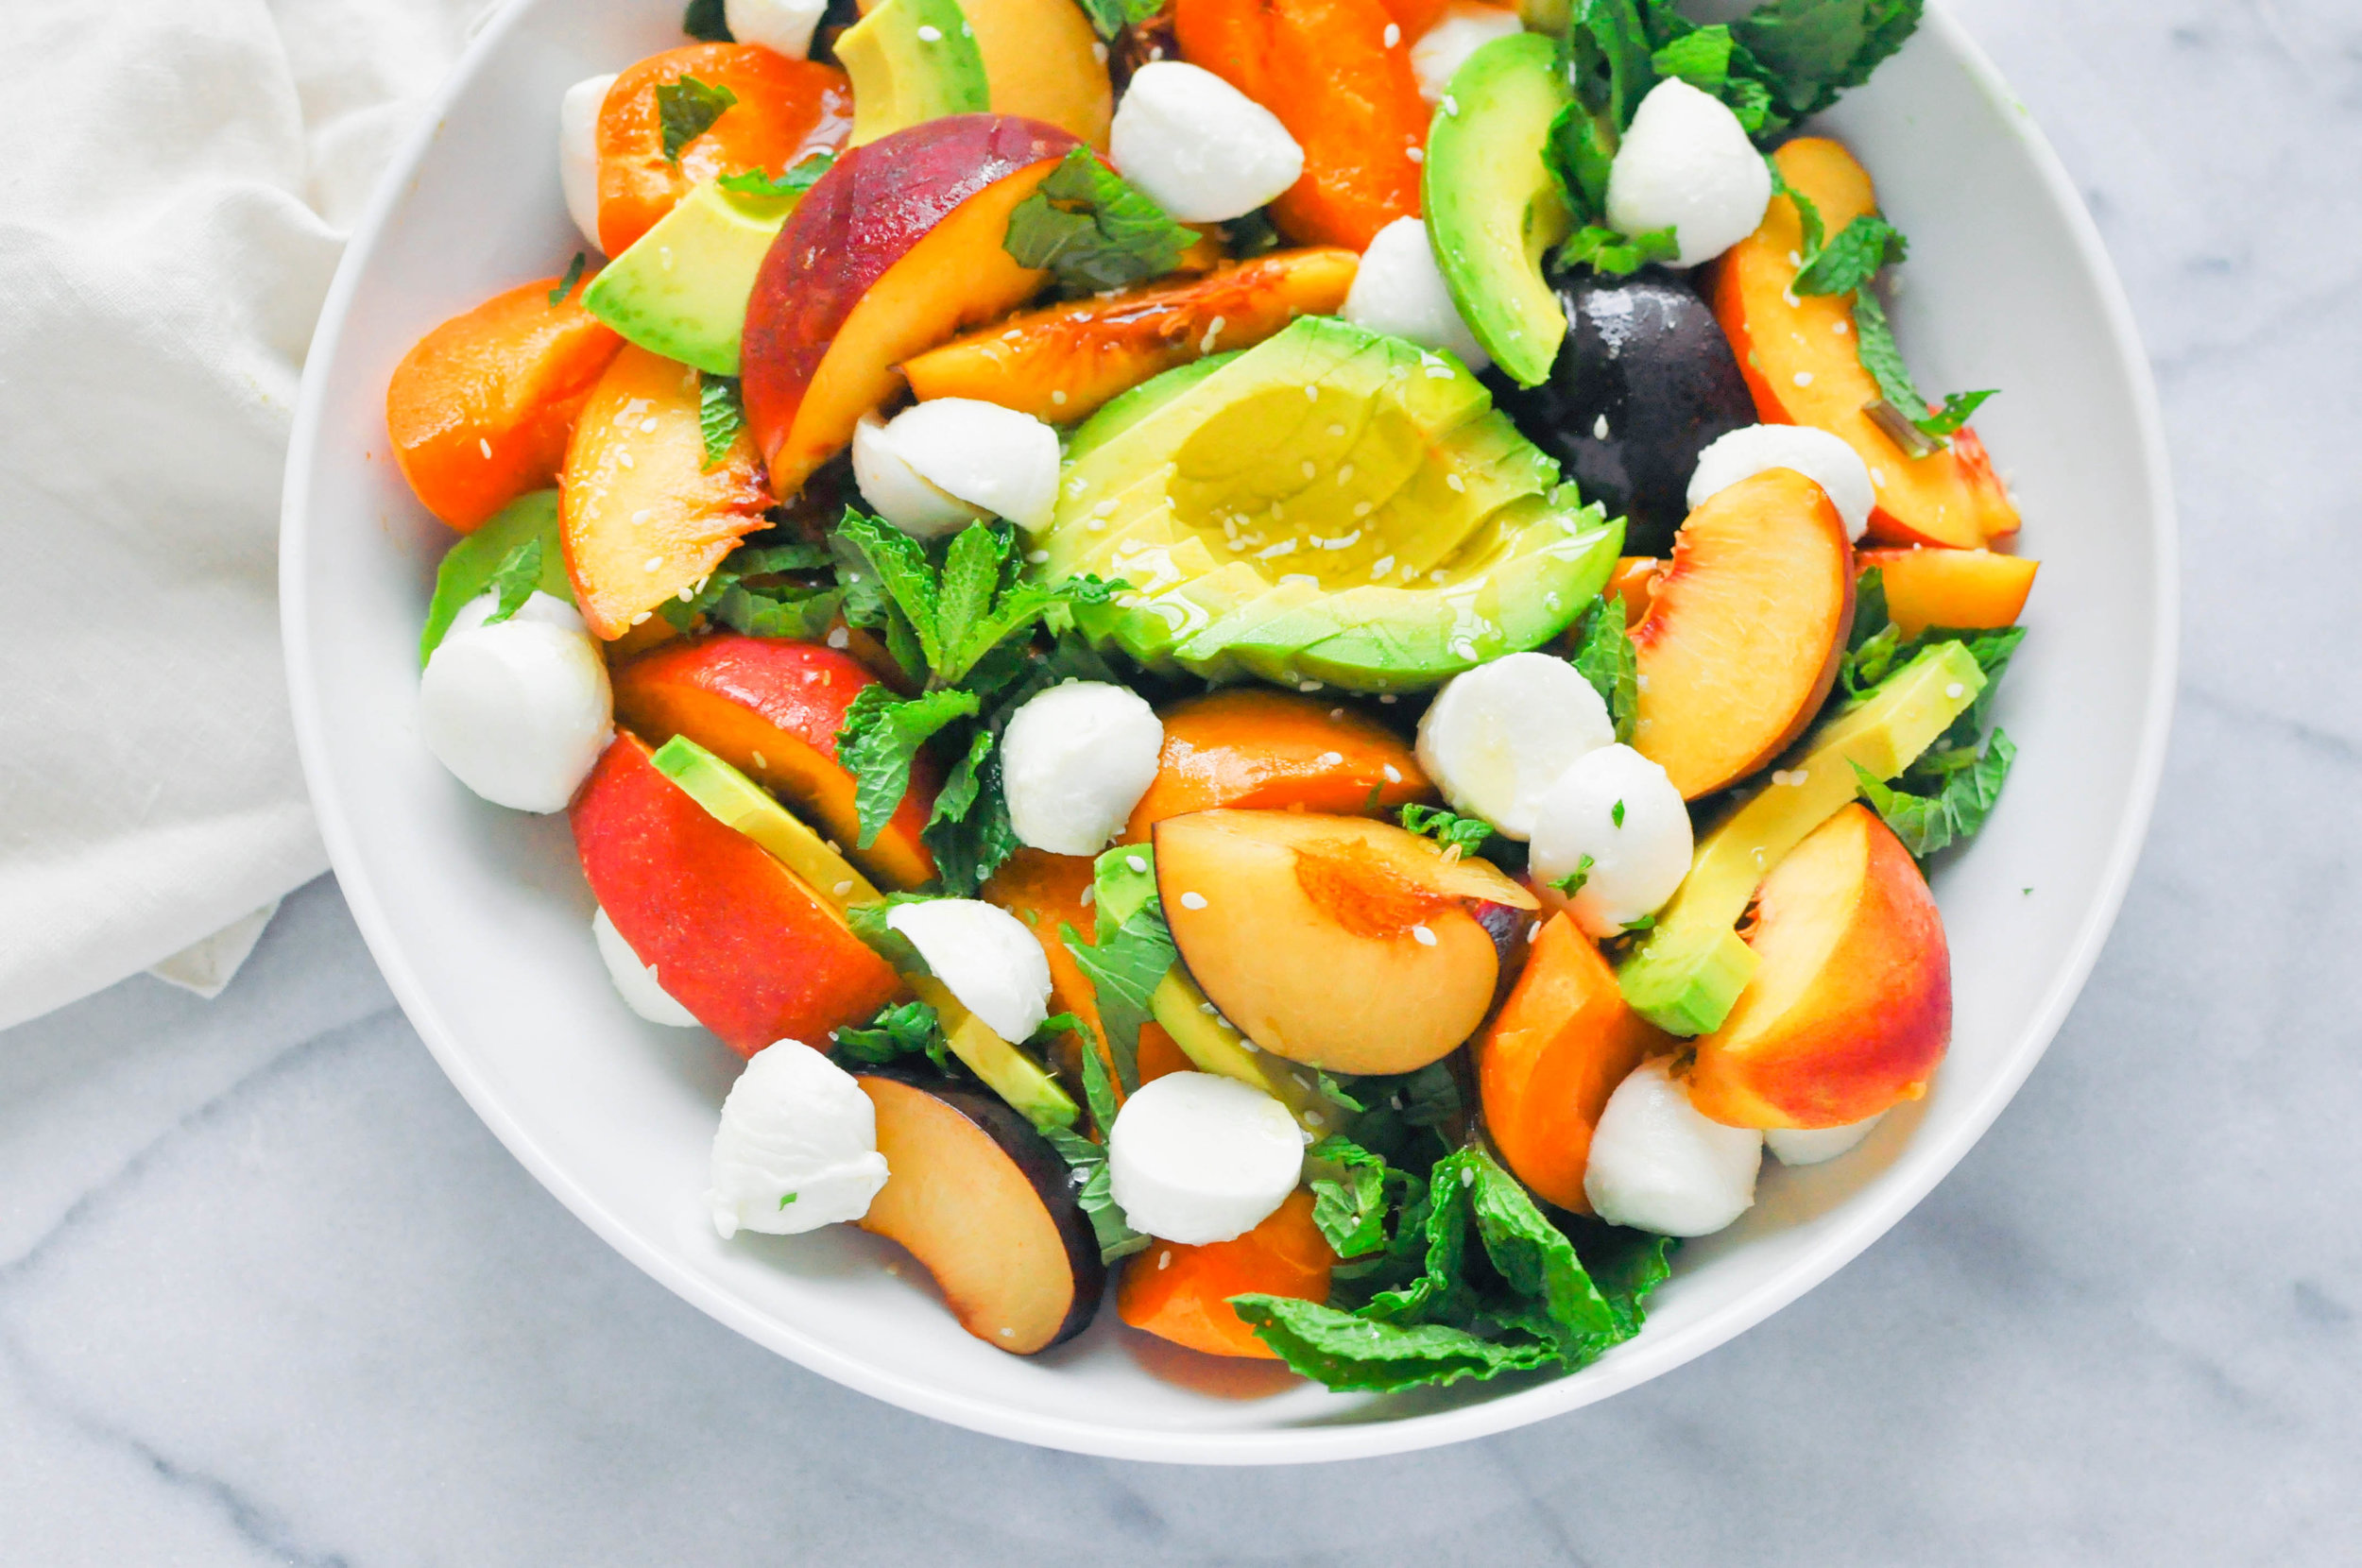 Summer Stone Fruit Salad with peaches, plums, apricots, avocado, and mozzarella - a beautiful celebration of summer produce | This Healthy Table